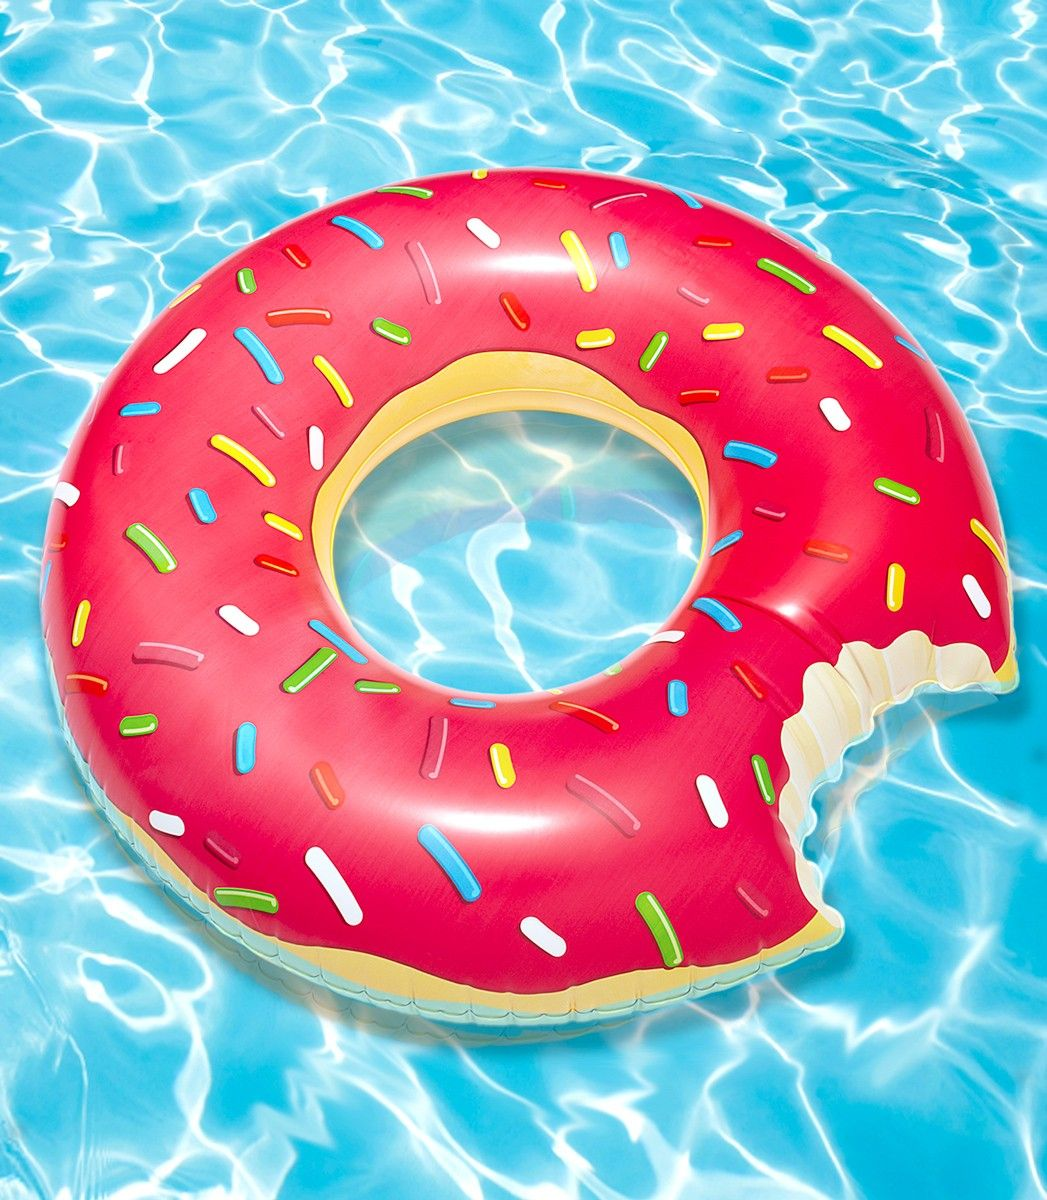 This Giant Donut Float Makes Us Want To Take A Bite Out Of Summer In The